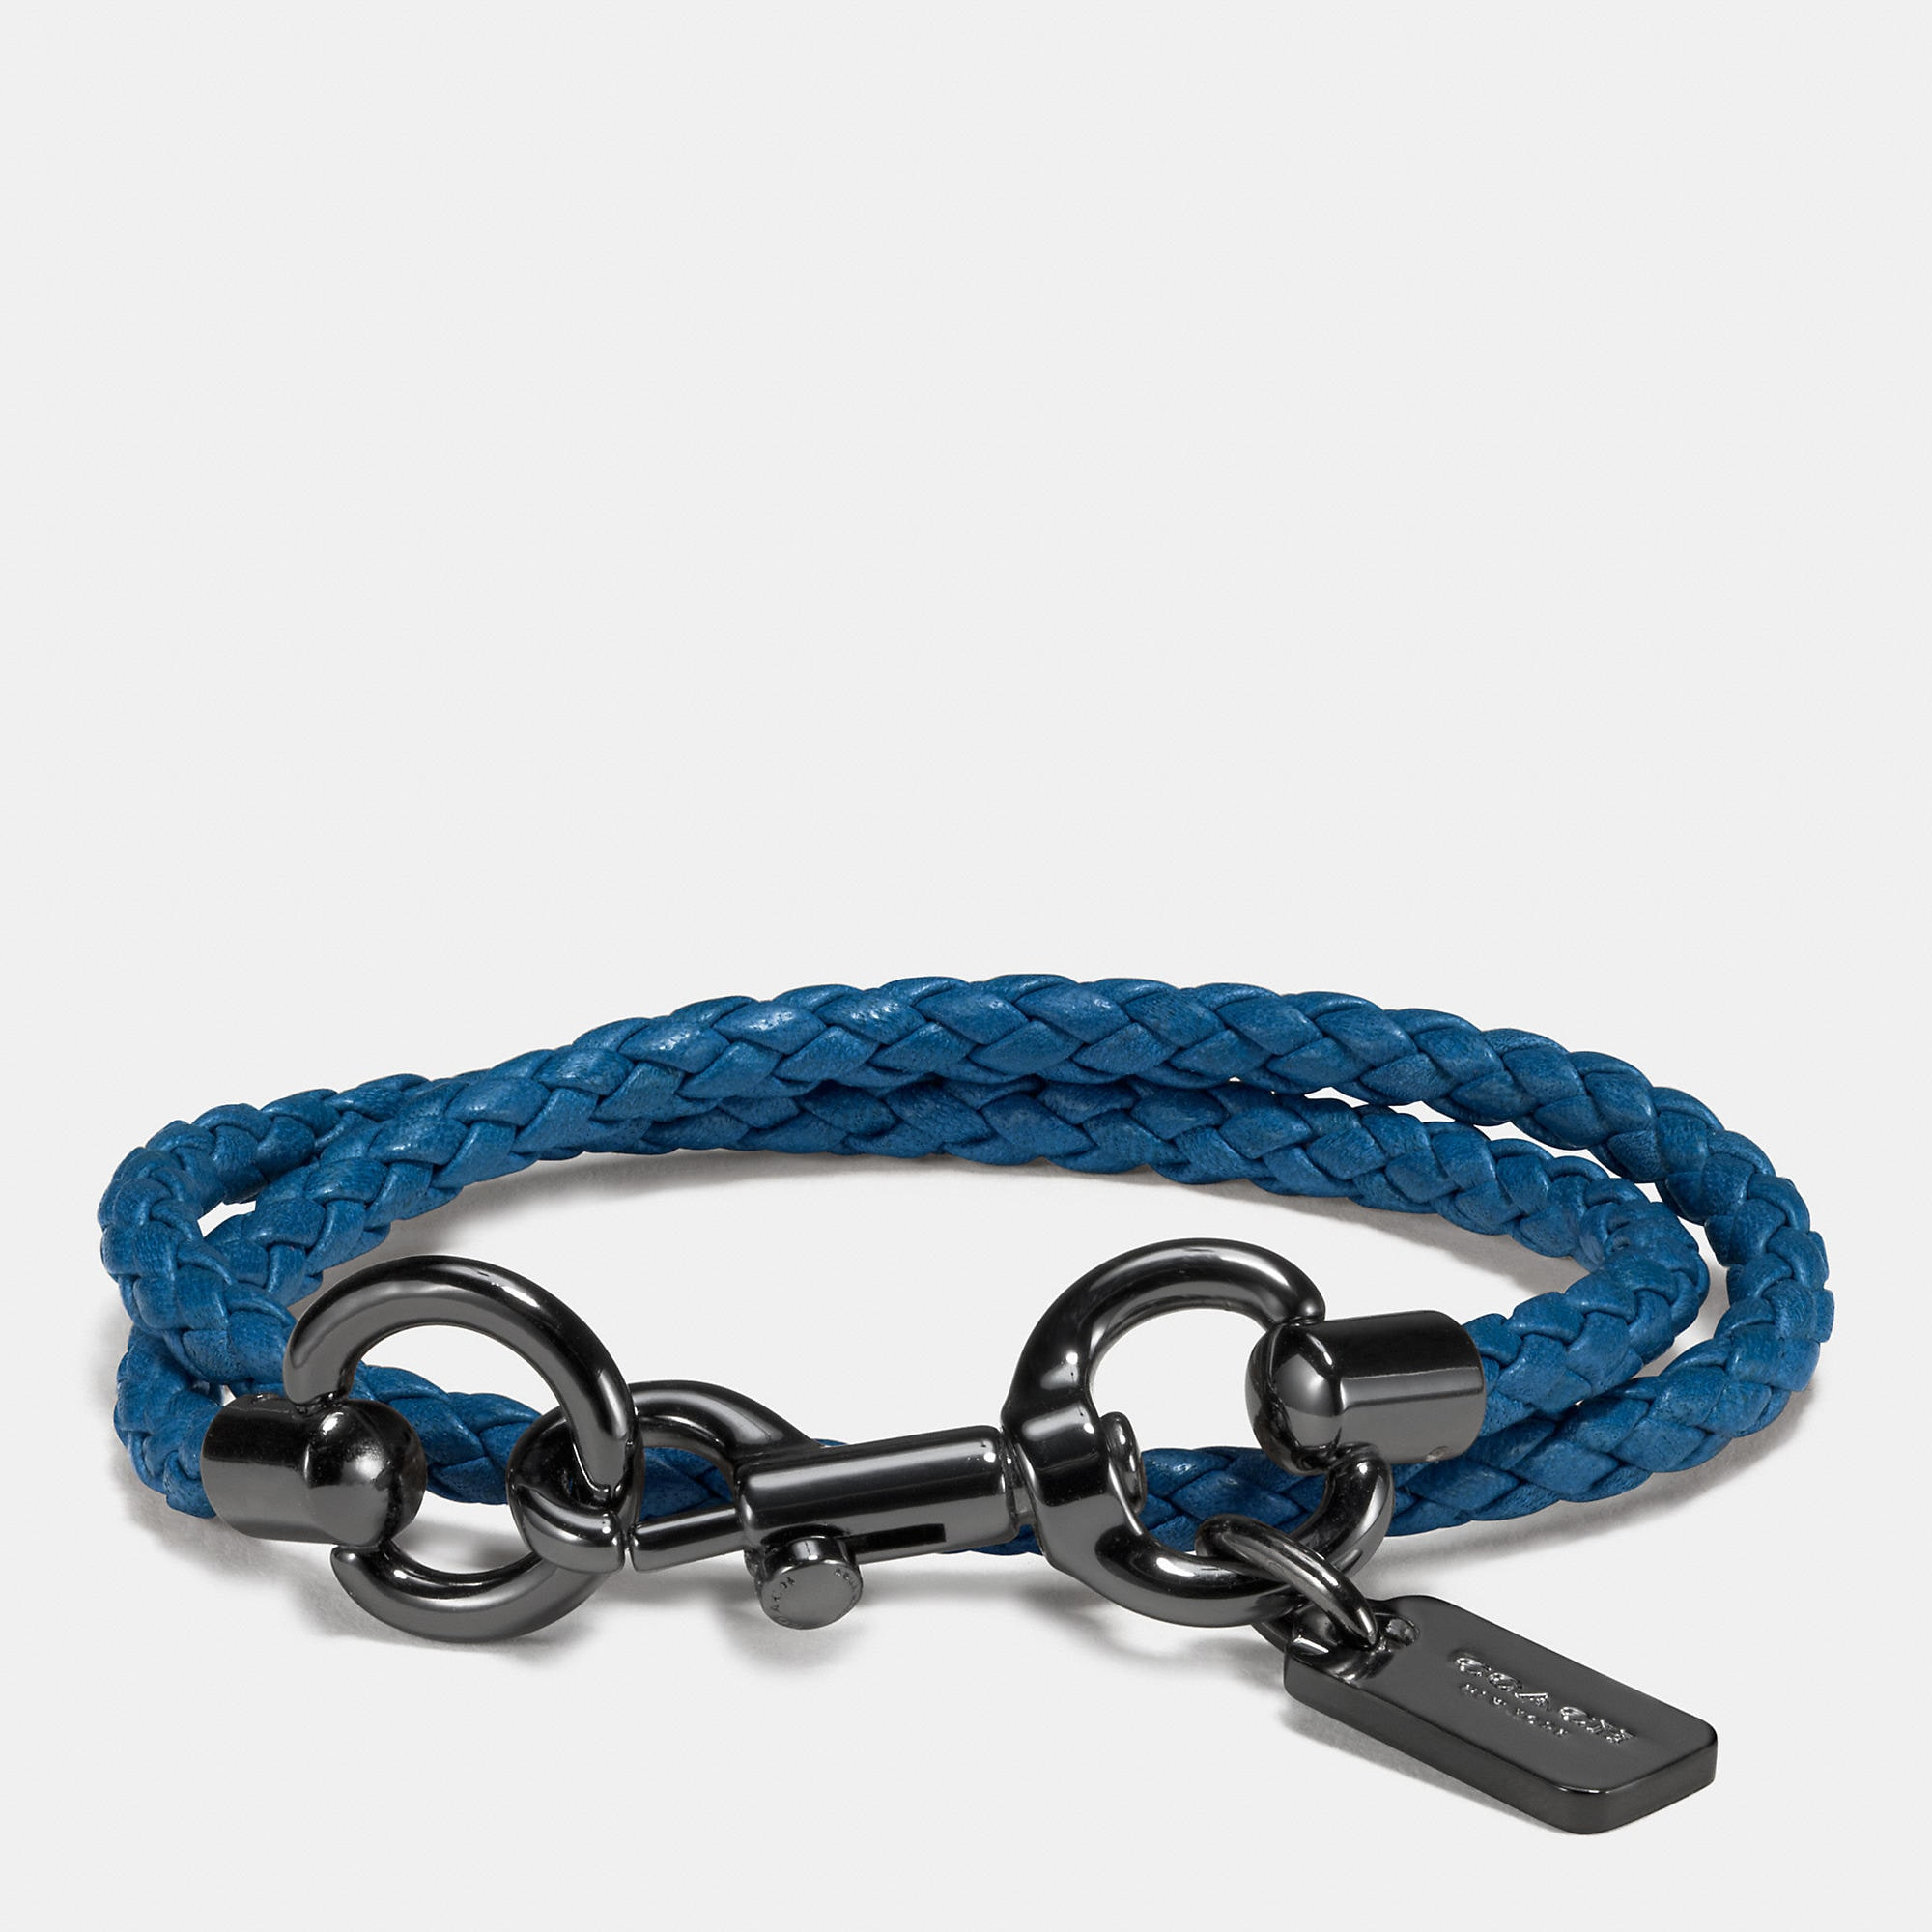 Coach Leather Dog Leash Wrap Bracelet